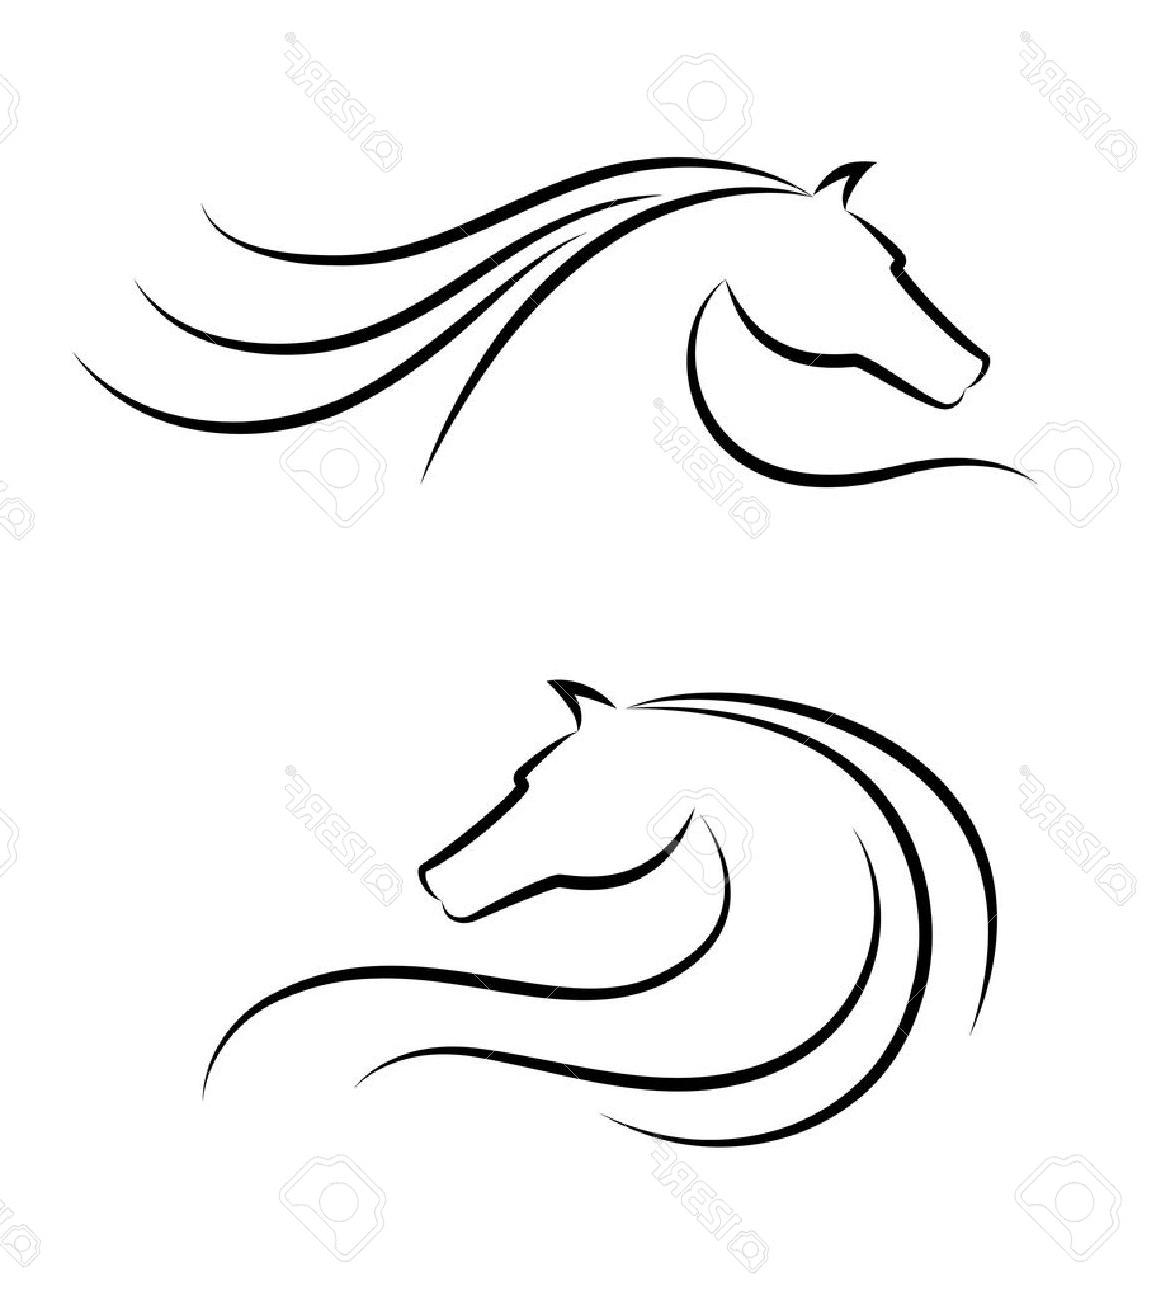 1175x1300 Best 15 Horse Head Emblem Stock Vector Silhouette Drawing